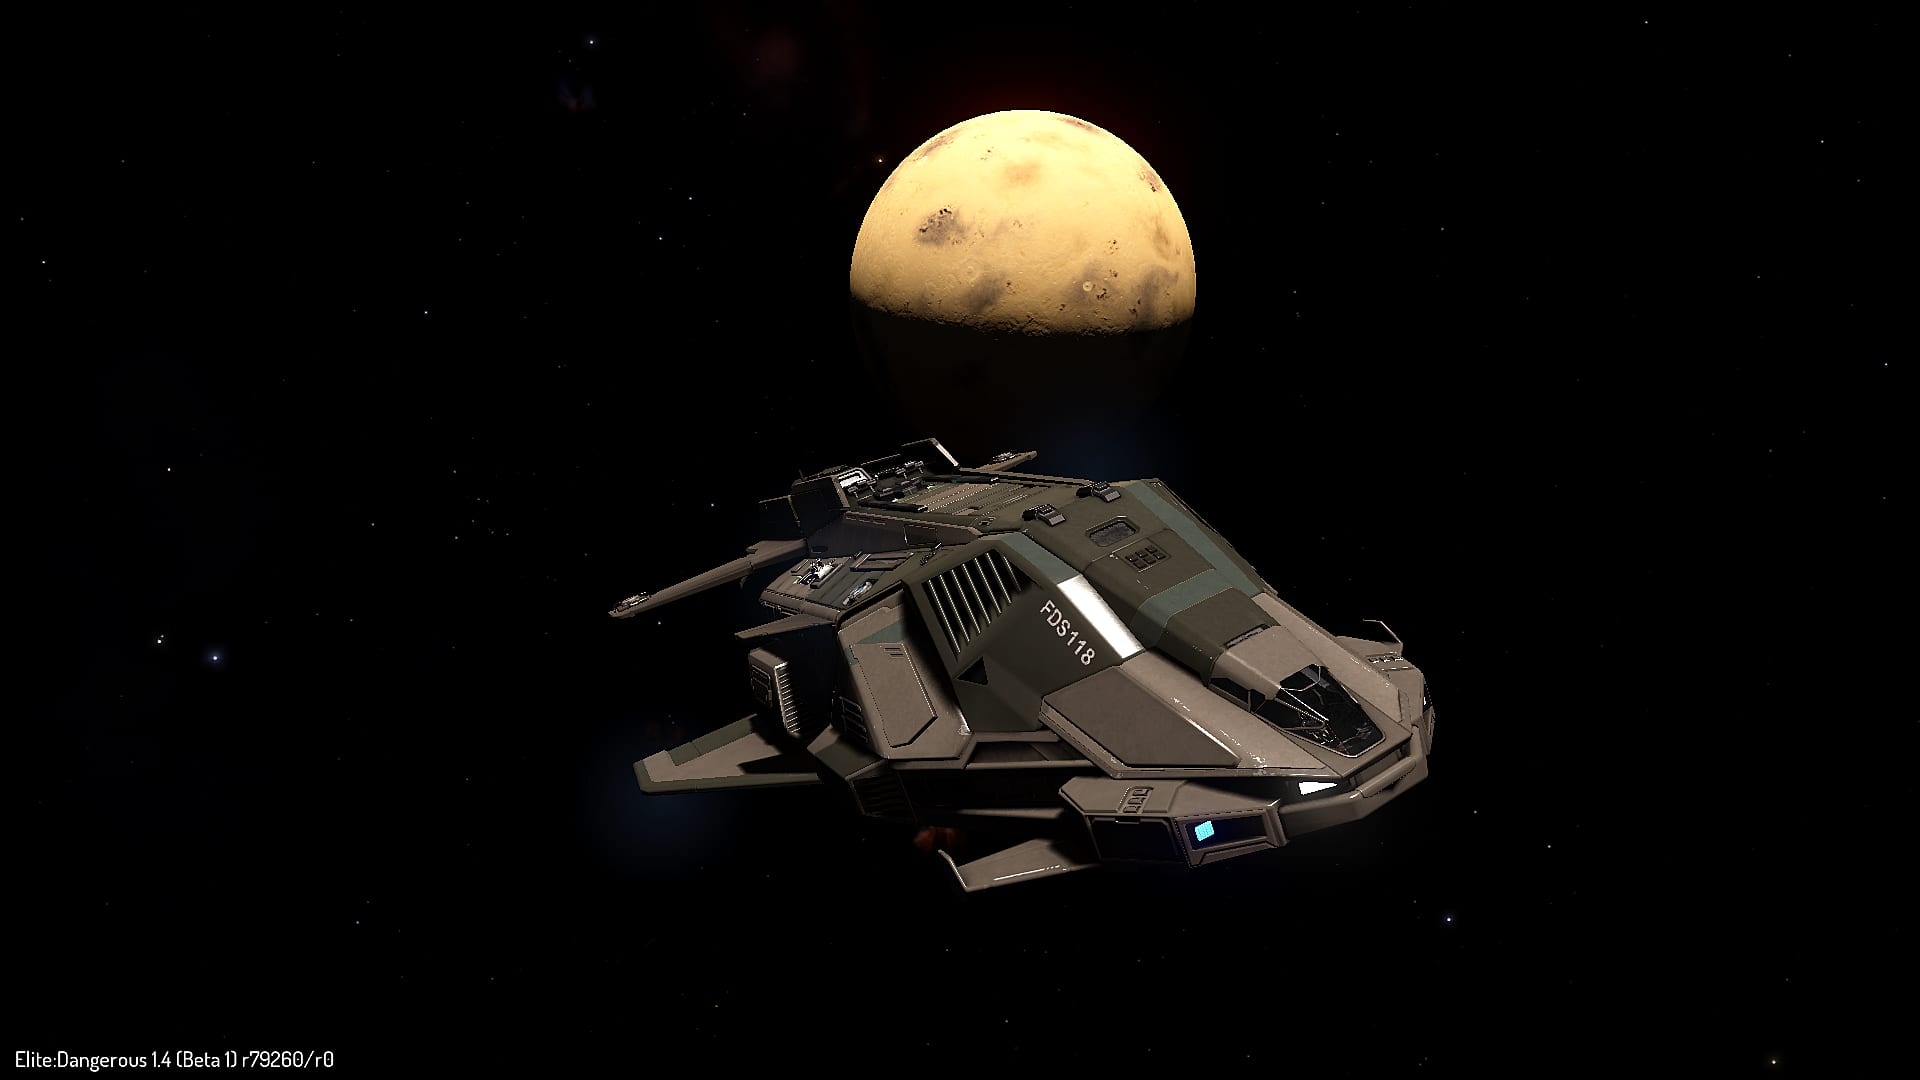 Is The Federal Gunship Worth Buying in Elite: Dangerous